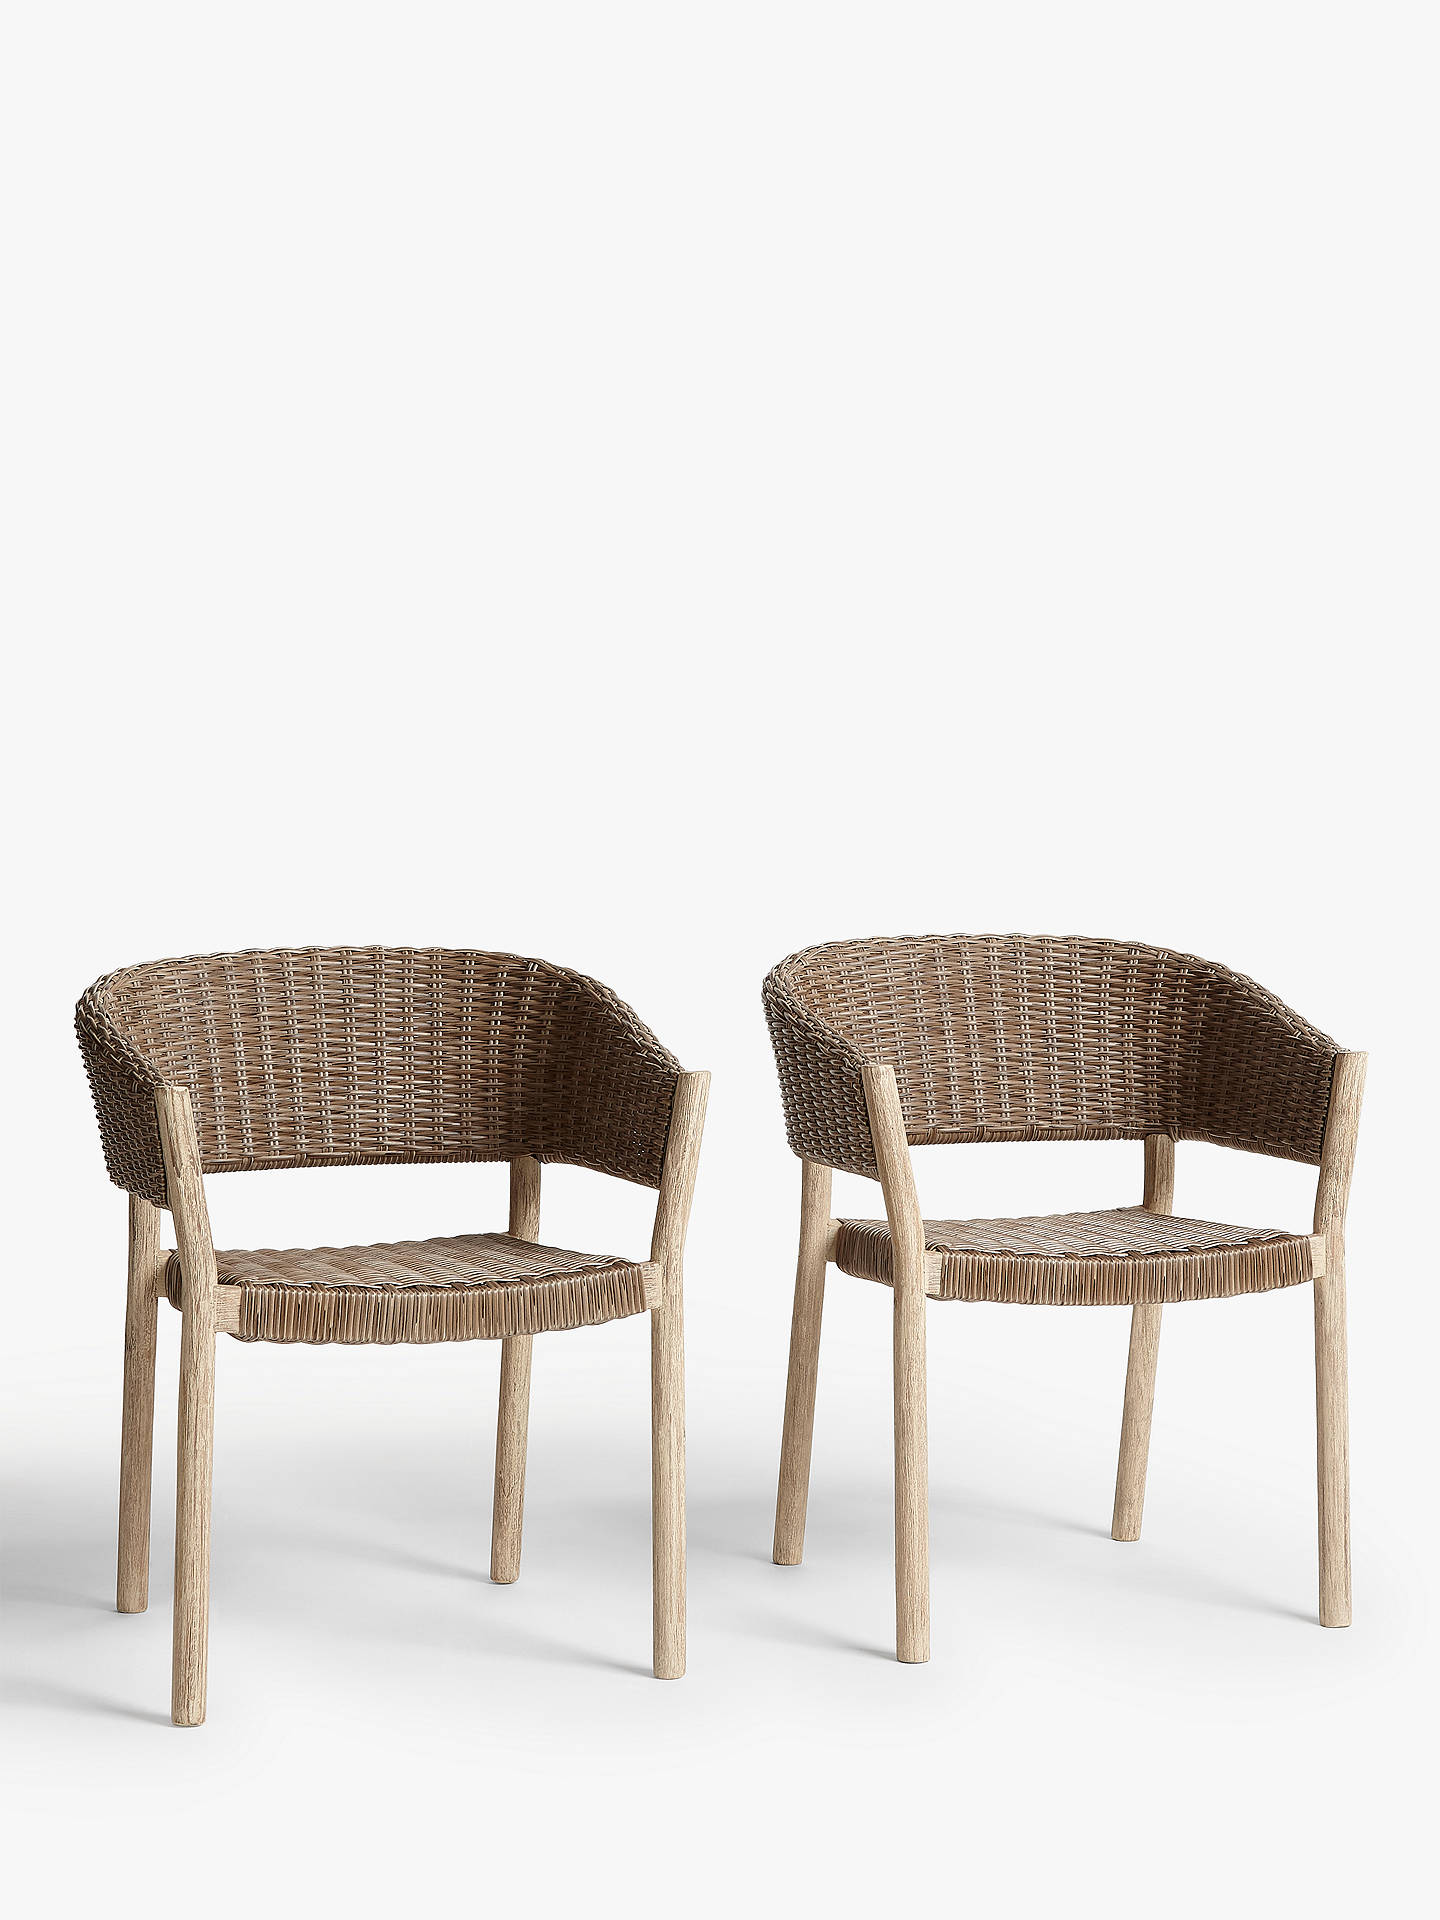 Buycroft collection burford garden woven dining chairs set of 2 fsc certified